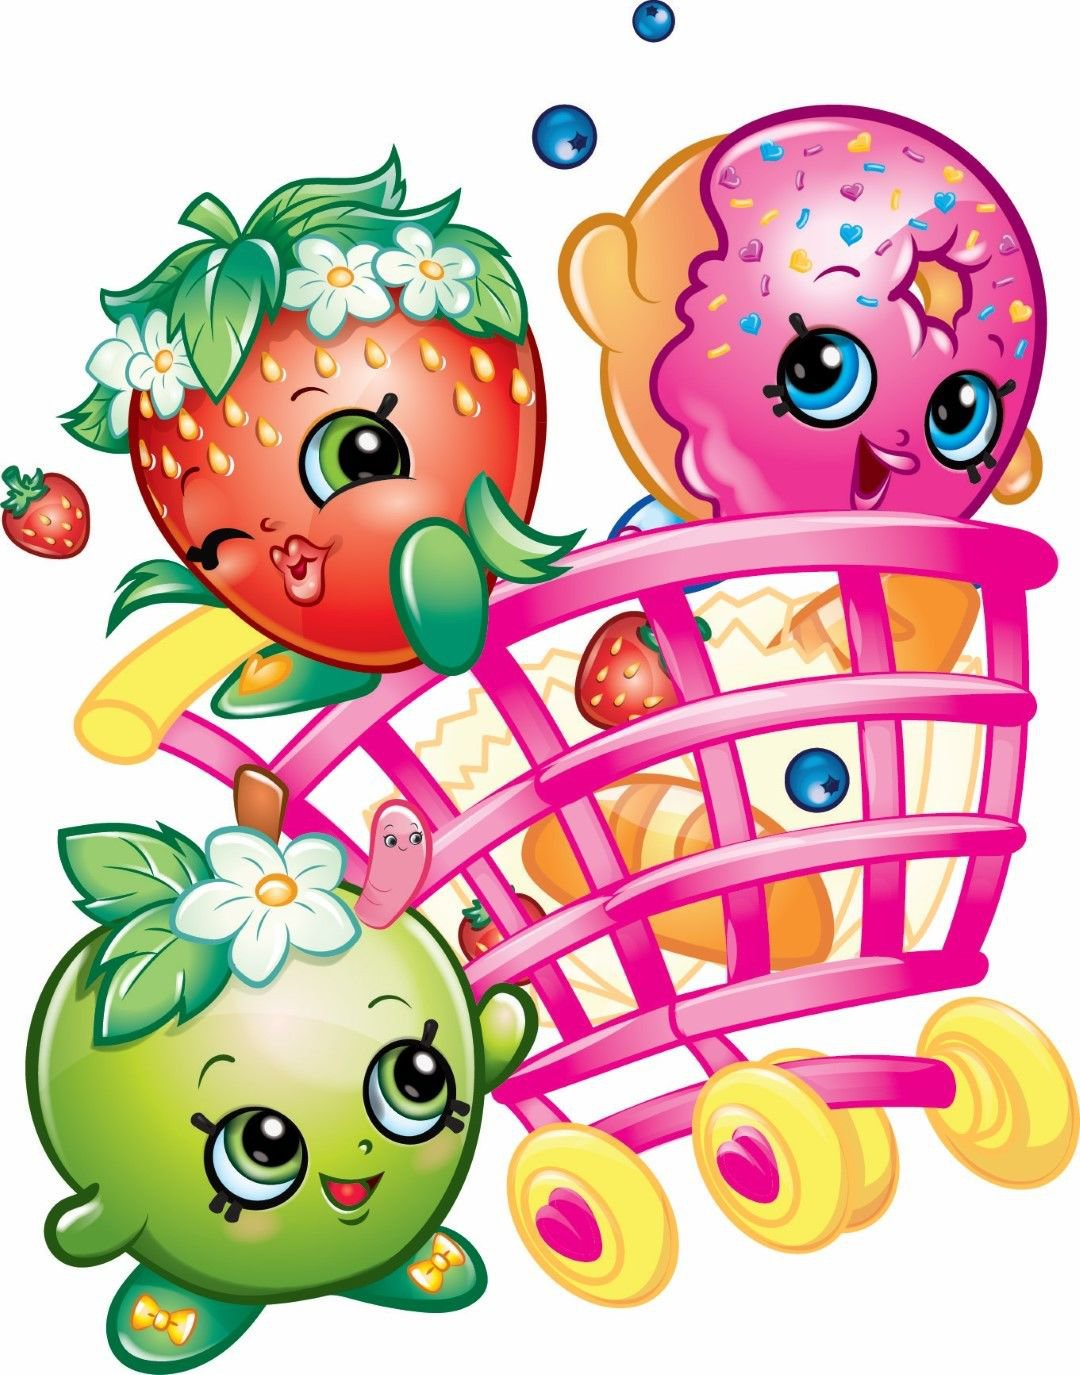 Shopkins Edible image Cake topper decoration